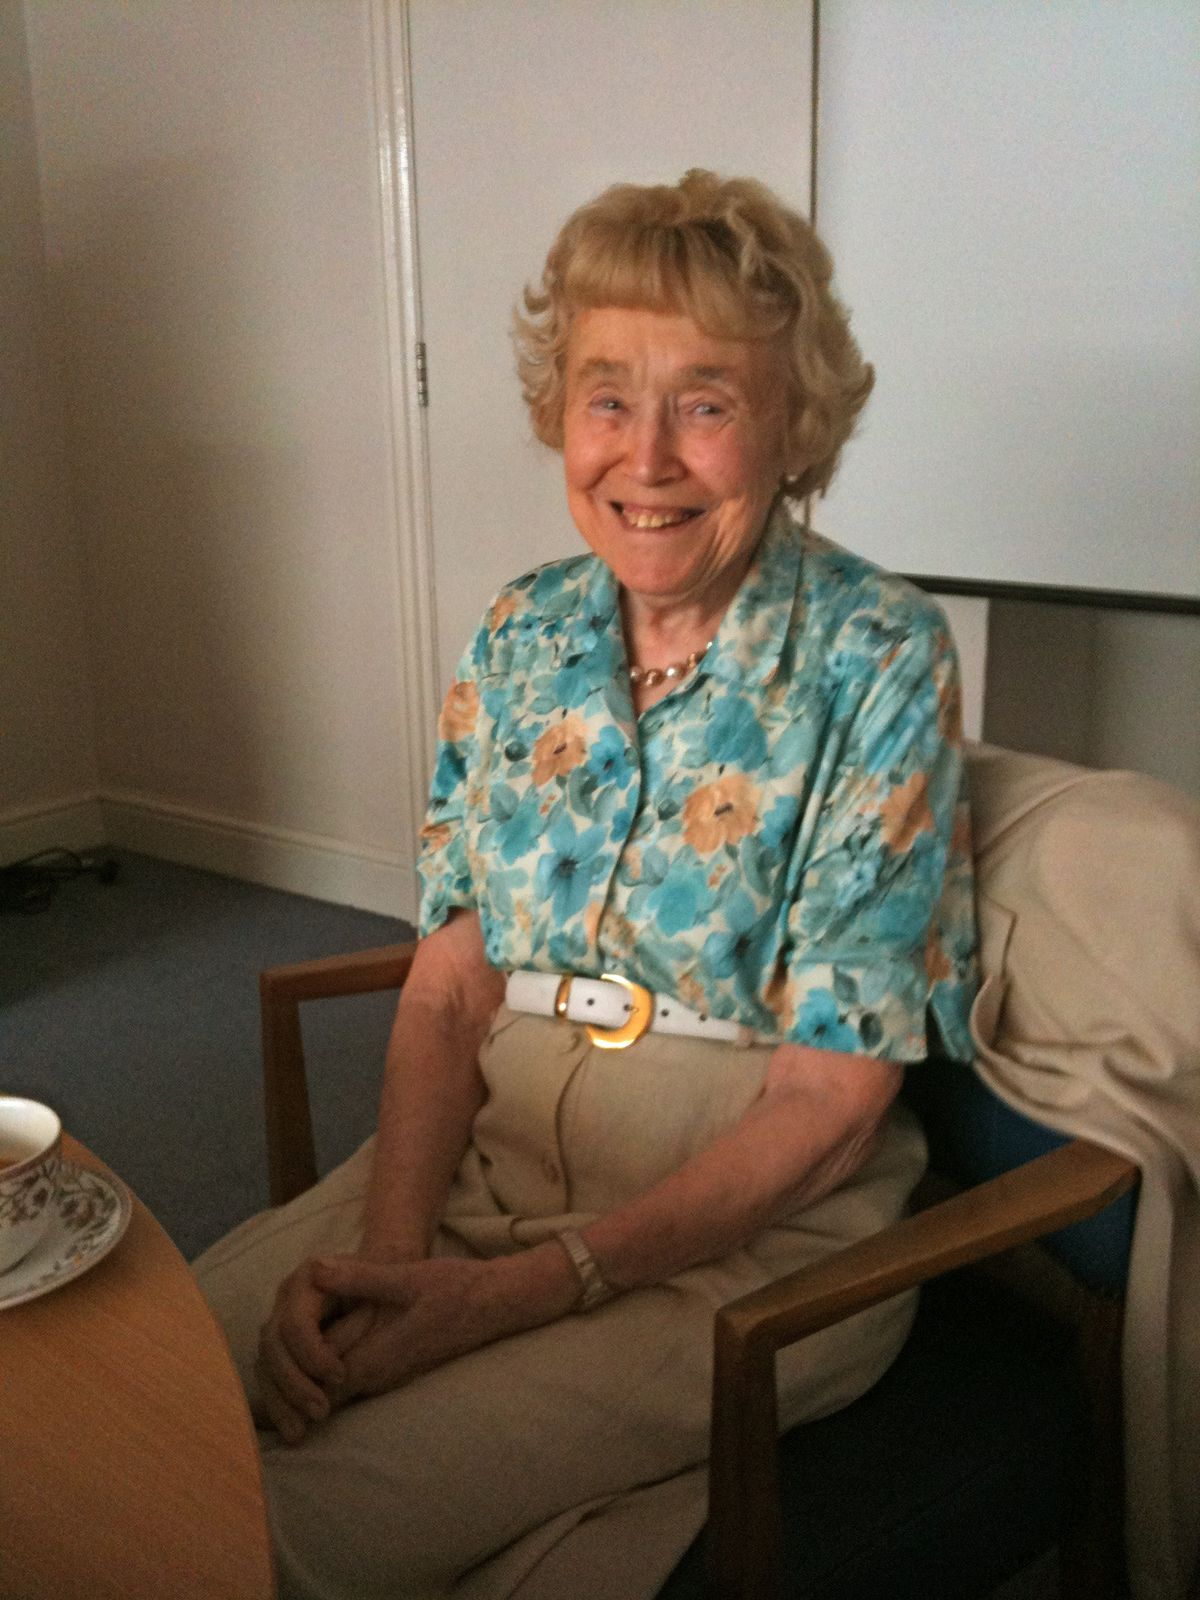 Wing sitting in a chair in a flowery shirt, smiling